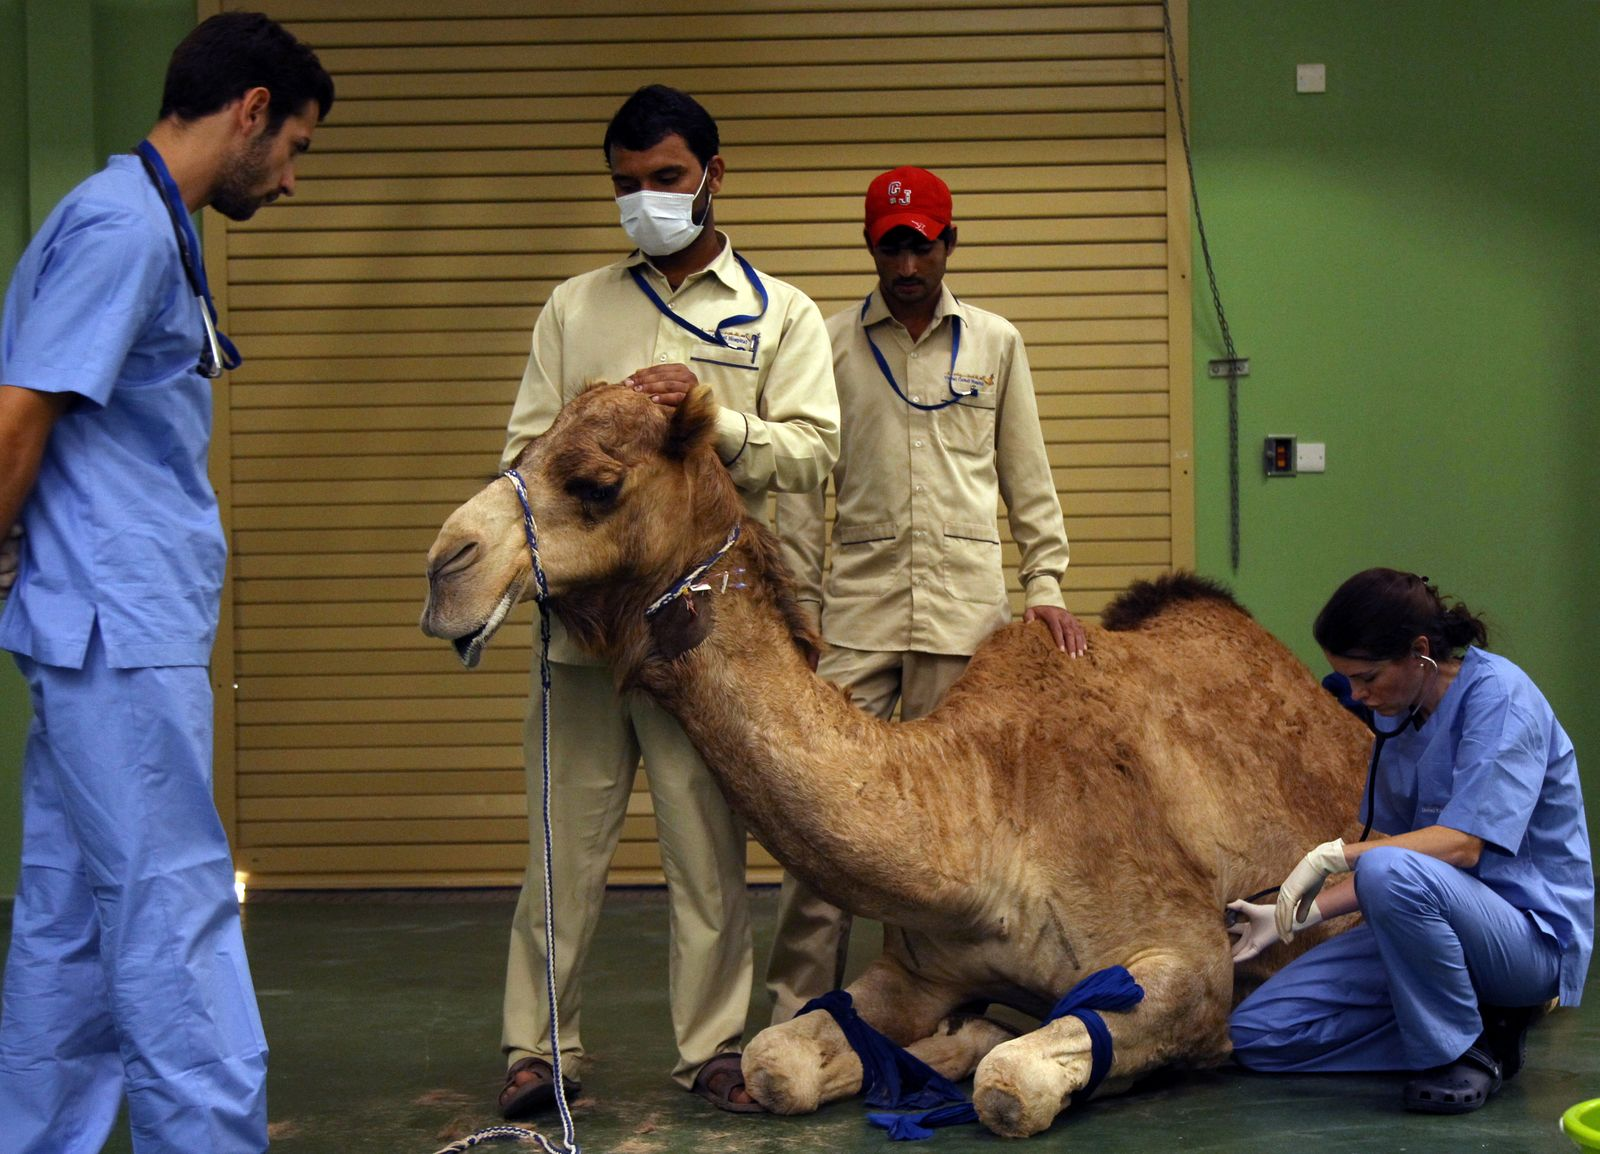 A camel receives an injection before a foot surgery at the Dubai Camel Hospital in Dubai